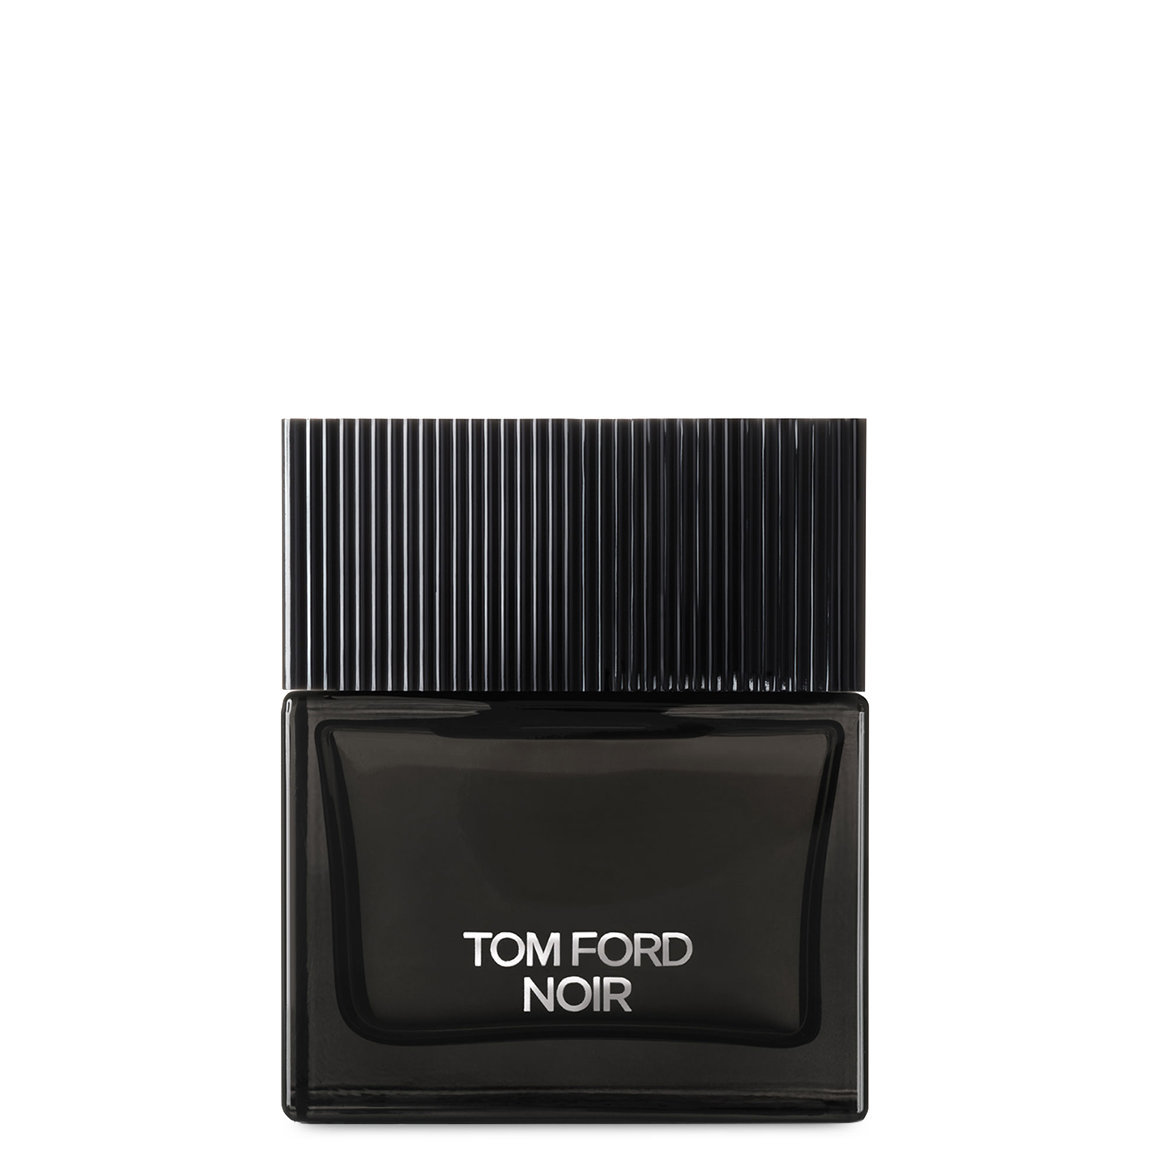 TOM FORD Tom Ford Noir 50 ml alternative view 1 - product swatch.